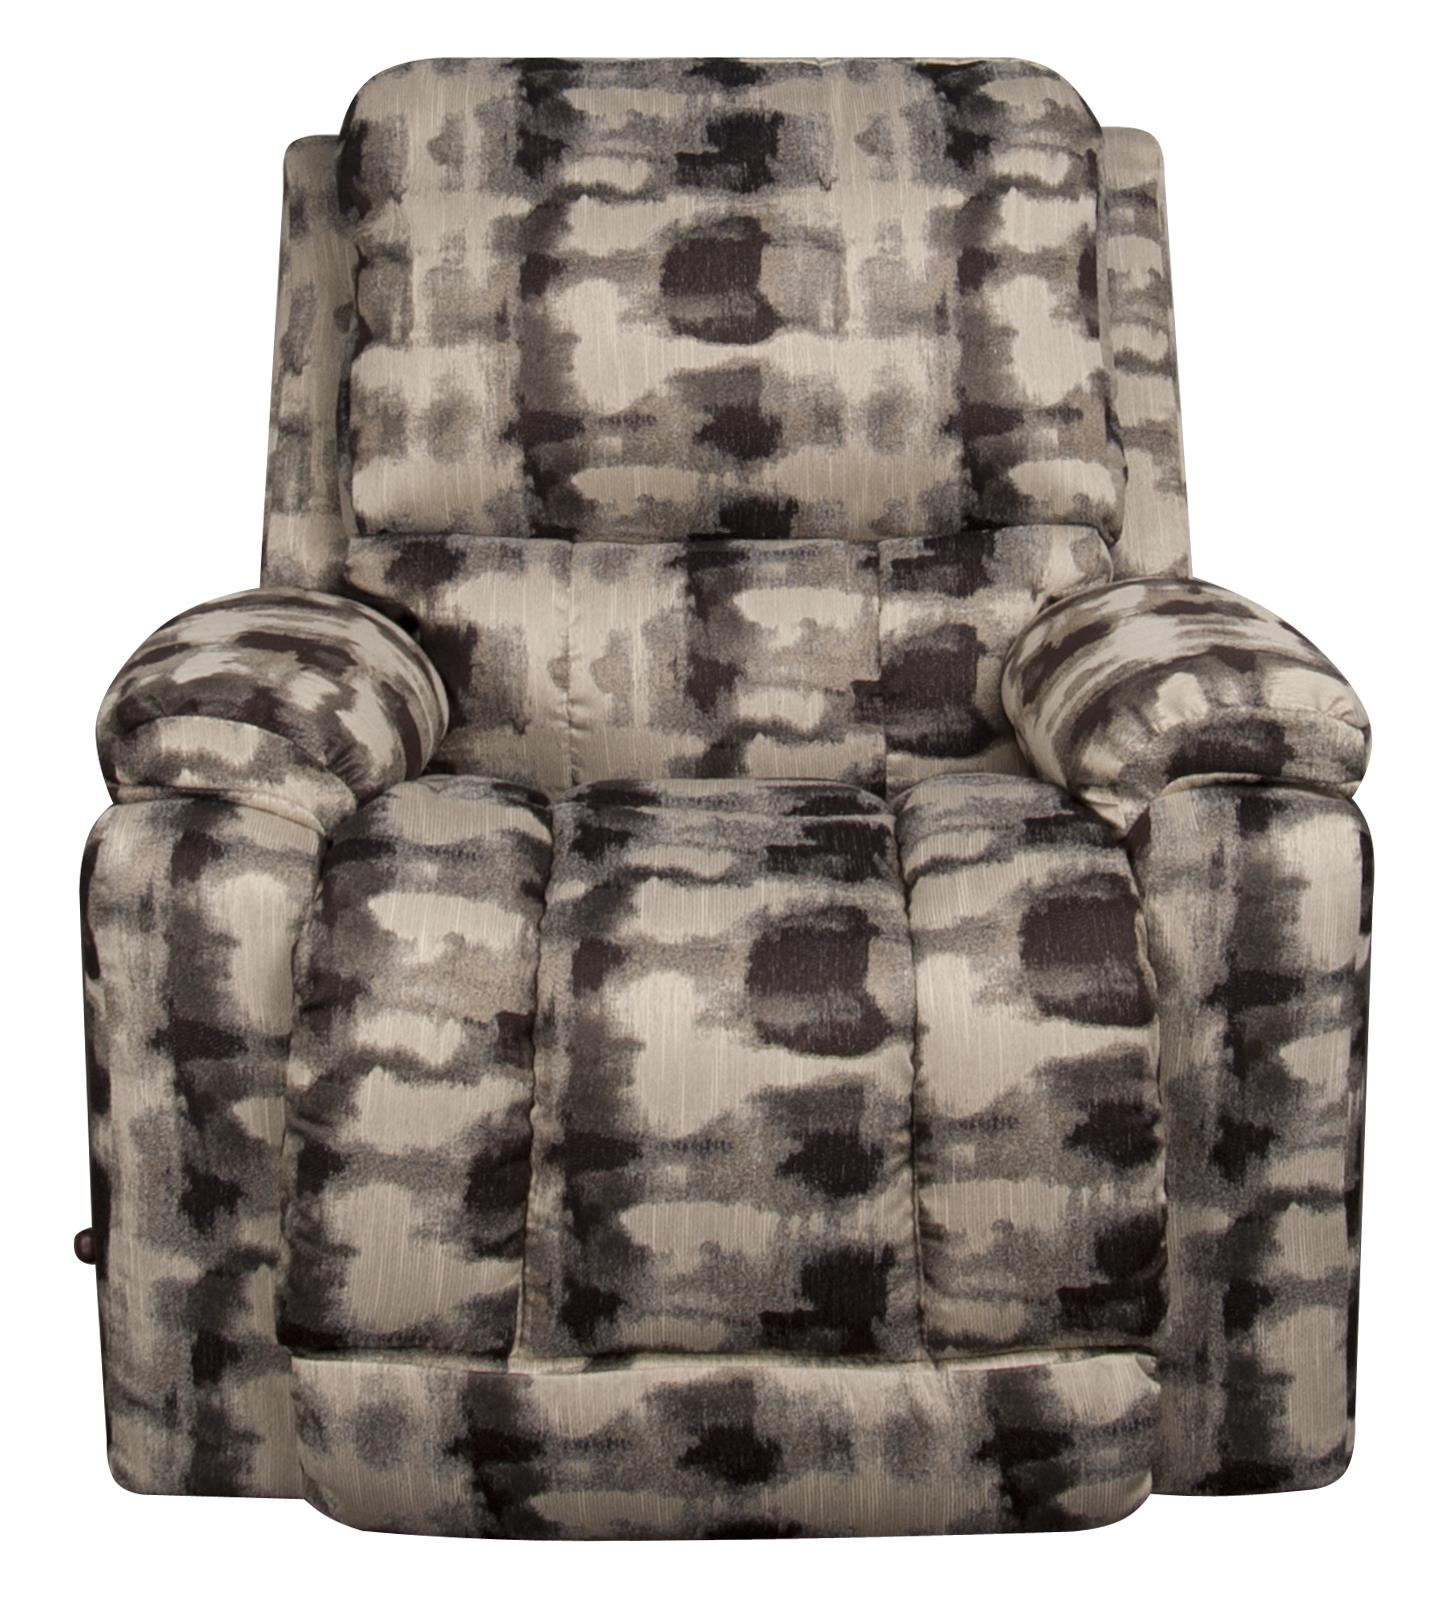 La-Z-Boy Greyson Greyson Rocker Recliner - Item Number: 781811707